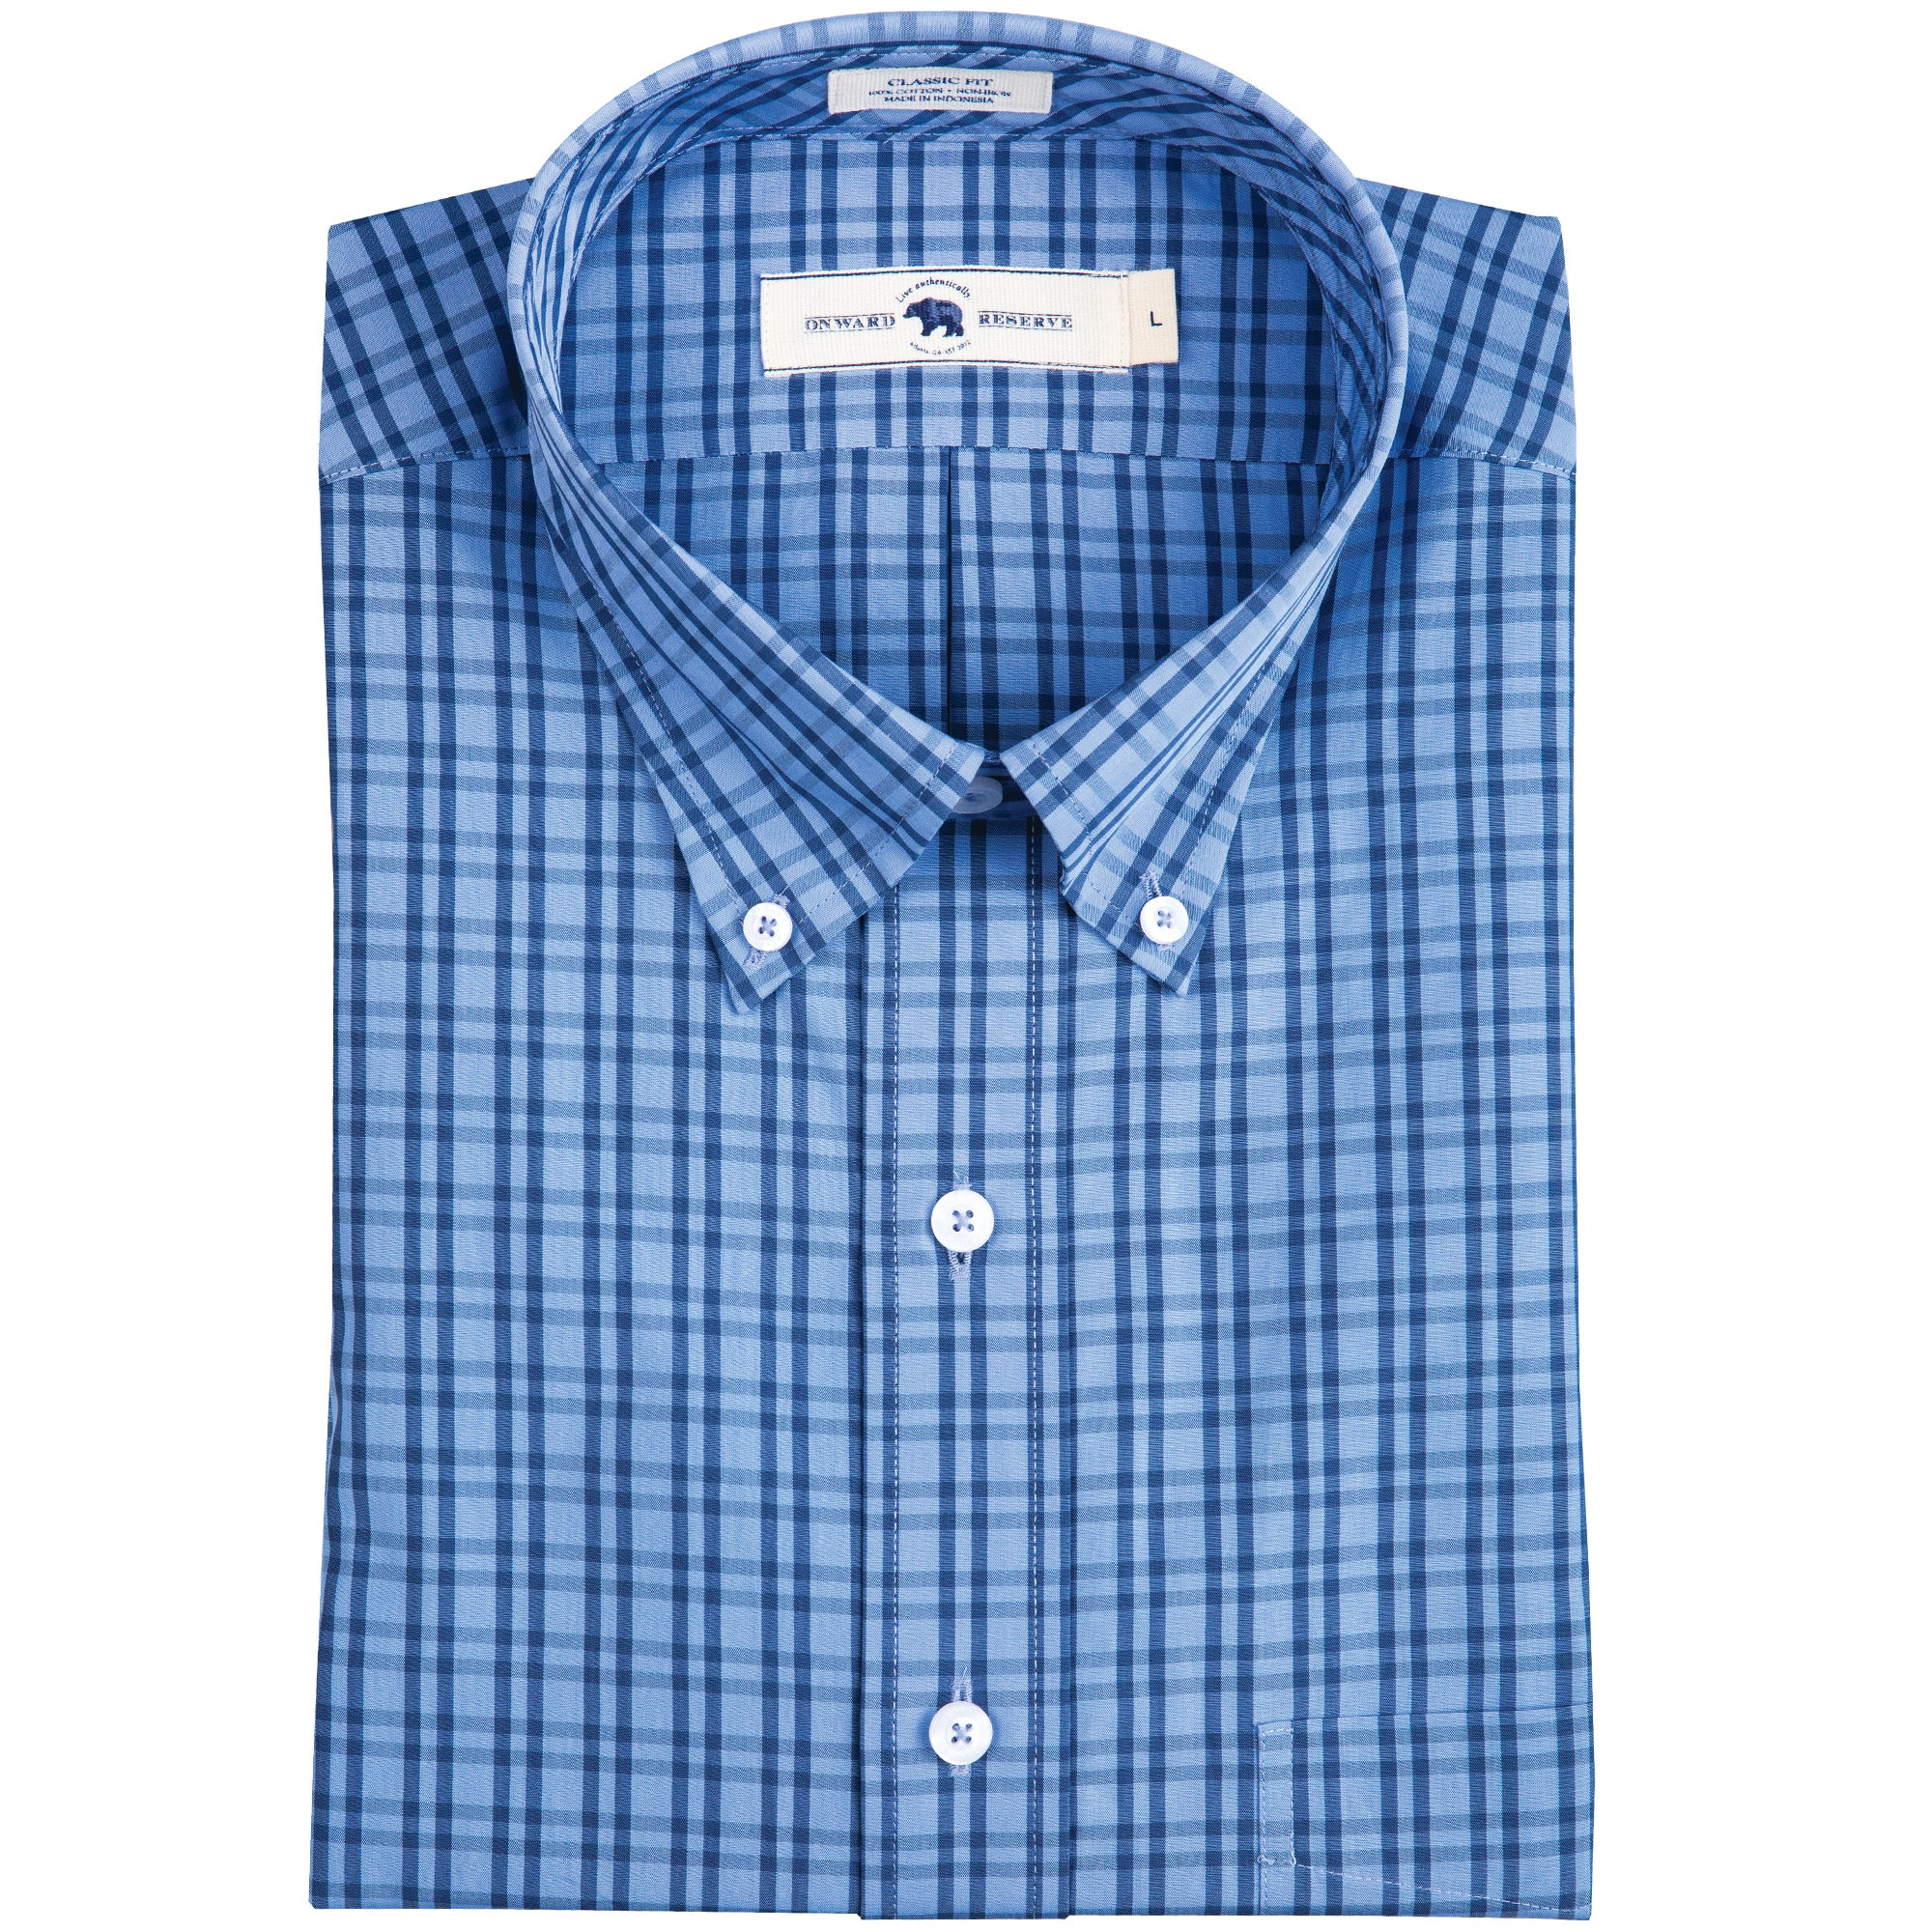 Sapelo Classic Fit Button Down - OnwardReserve